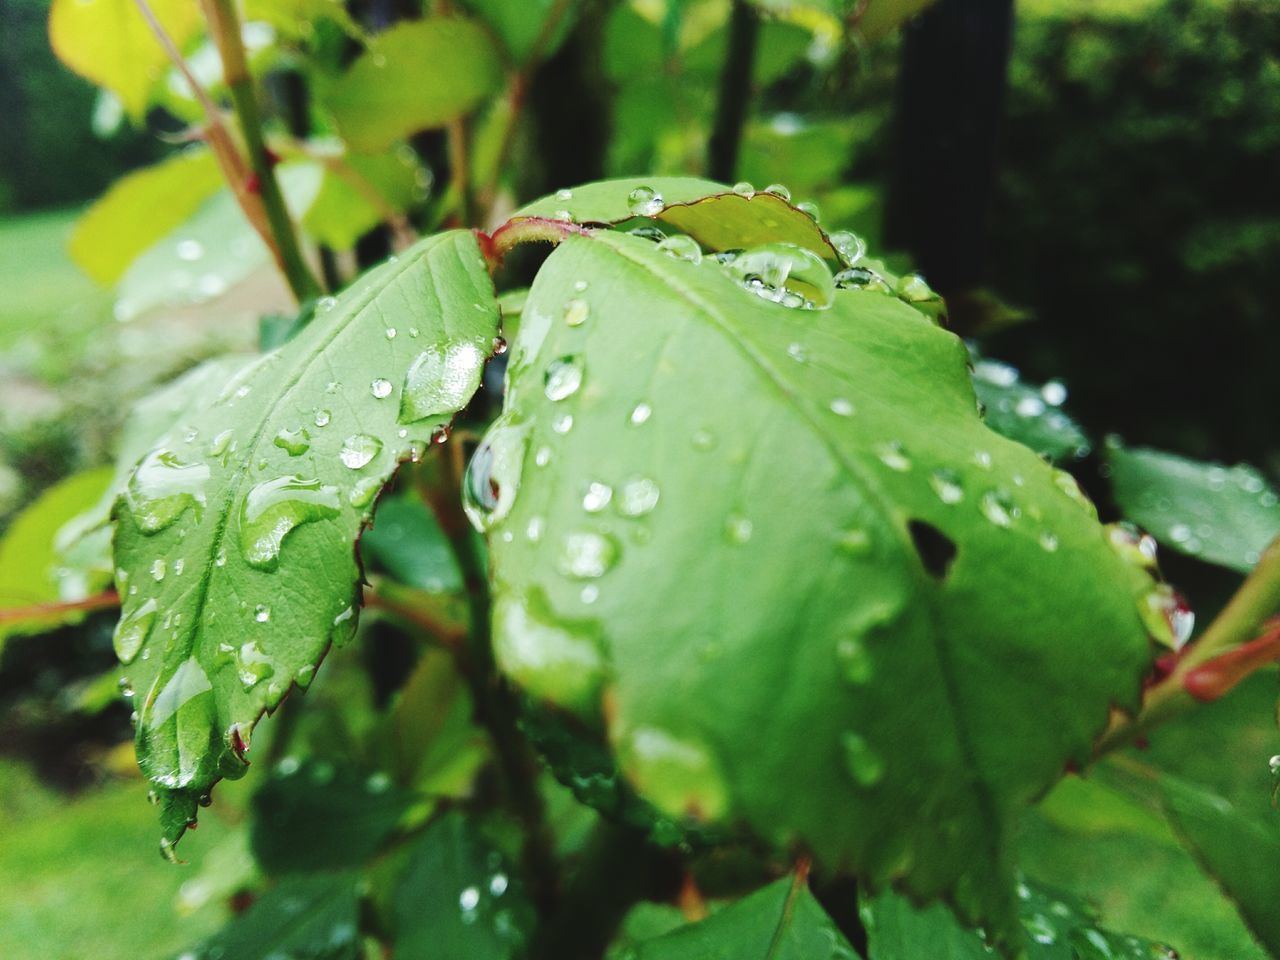 leaf, drop, water, green color, nature, wet, close-up, raindrop, growth, no people, day, fragility, outdoors, plant, freshness, beauty in nature